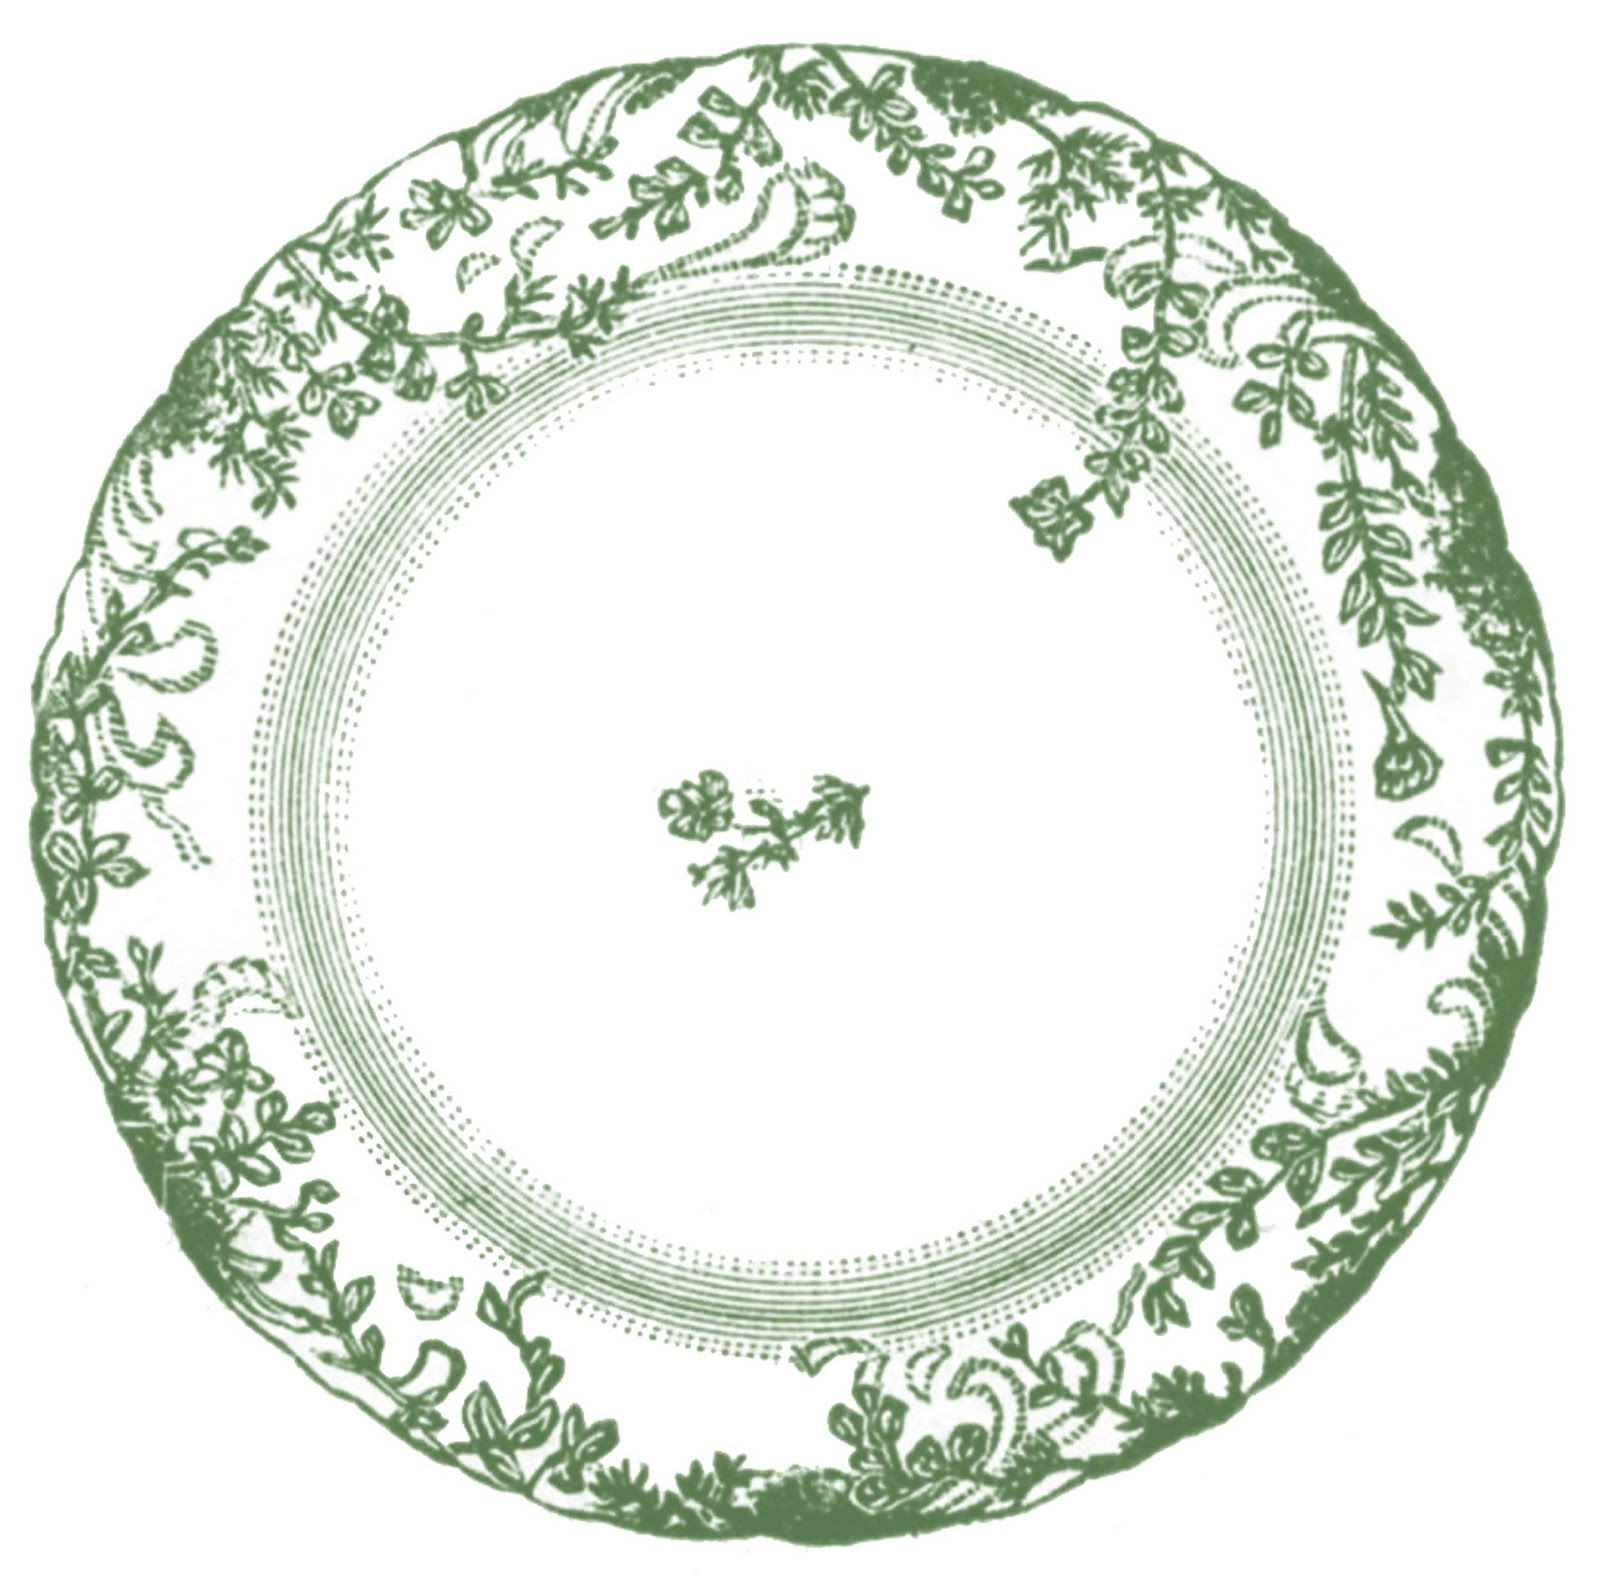 Vintage Clip Art - Antique China Plate - 4 Options | Vintage clip ...